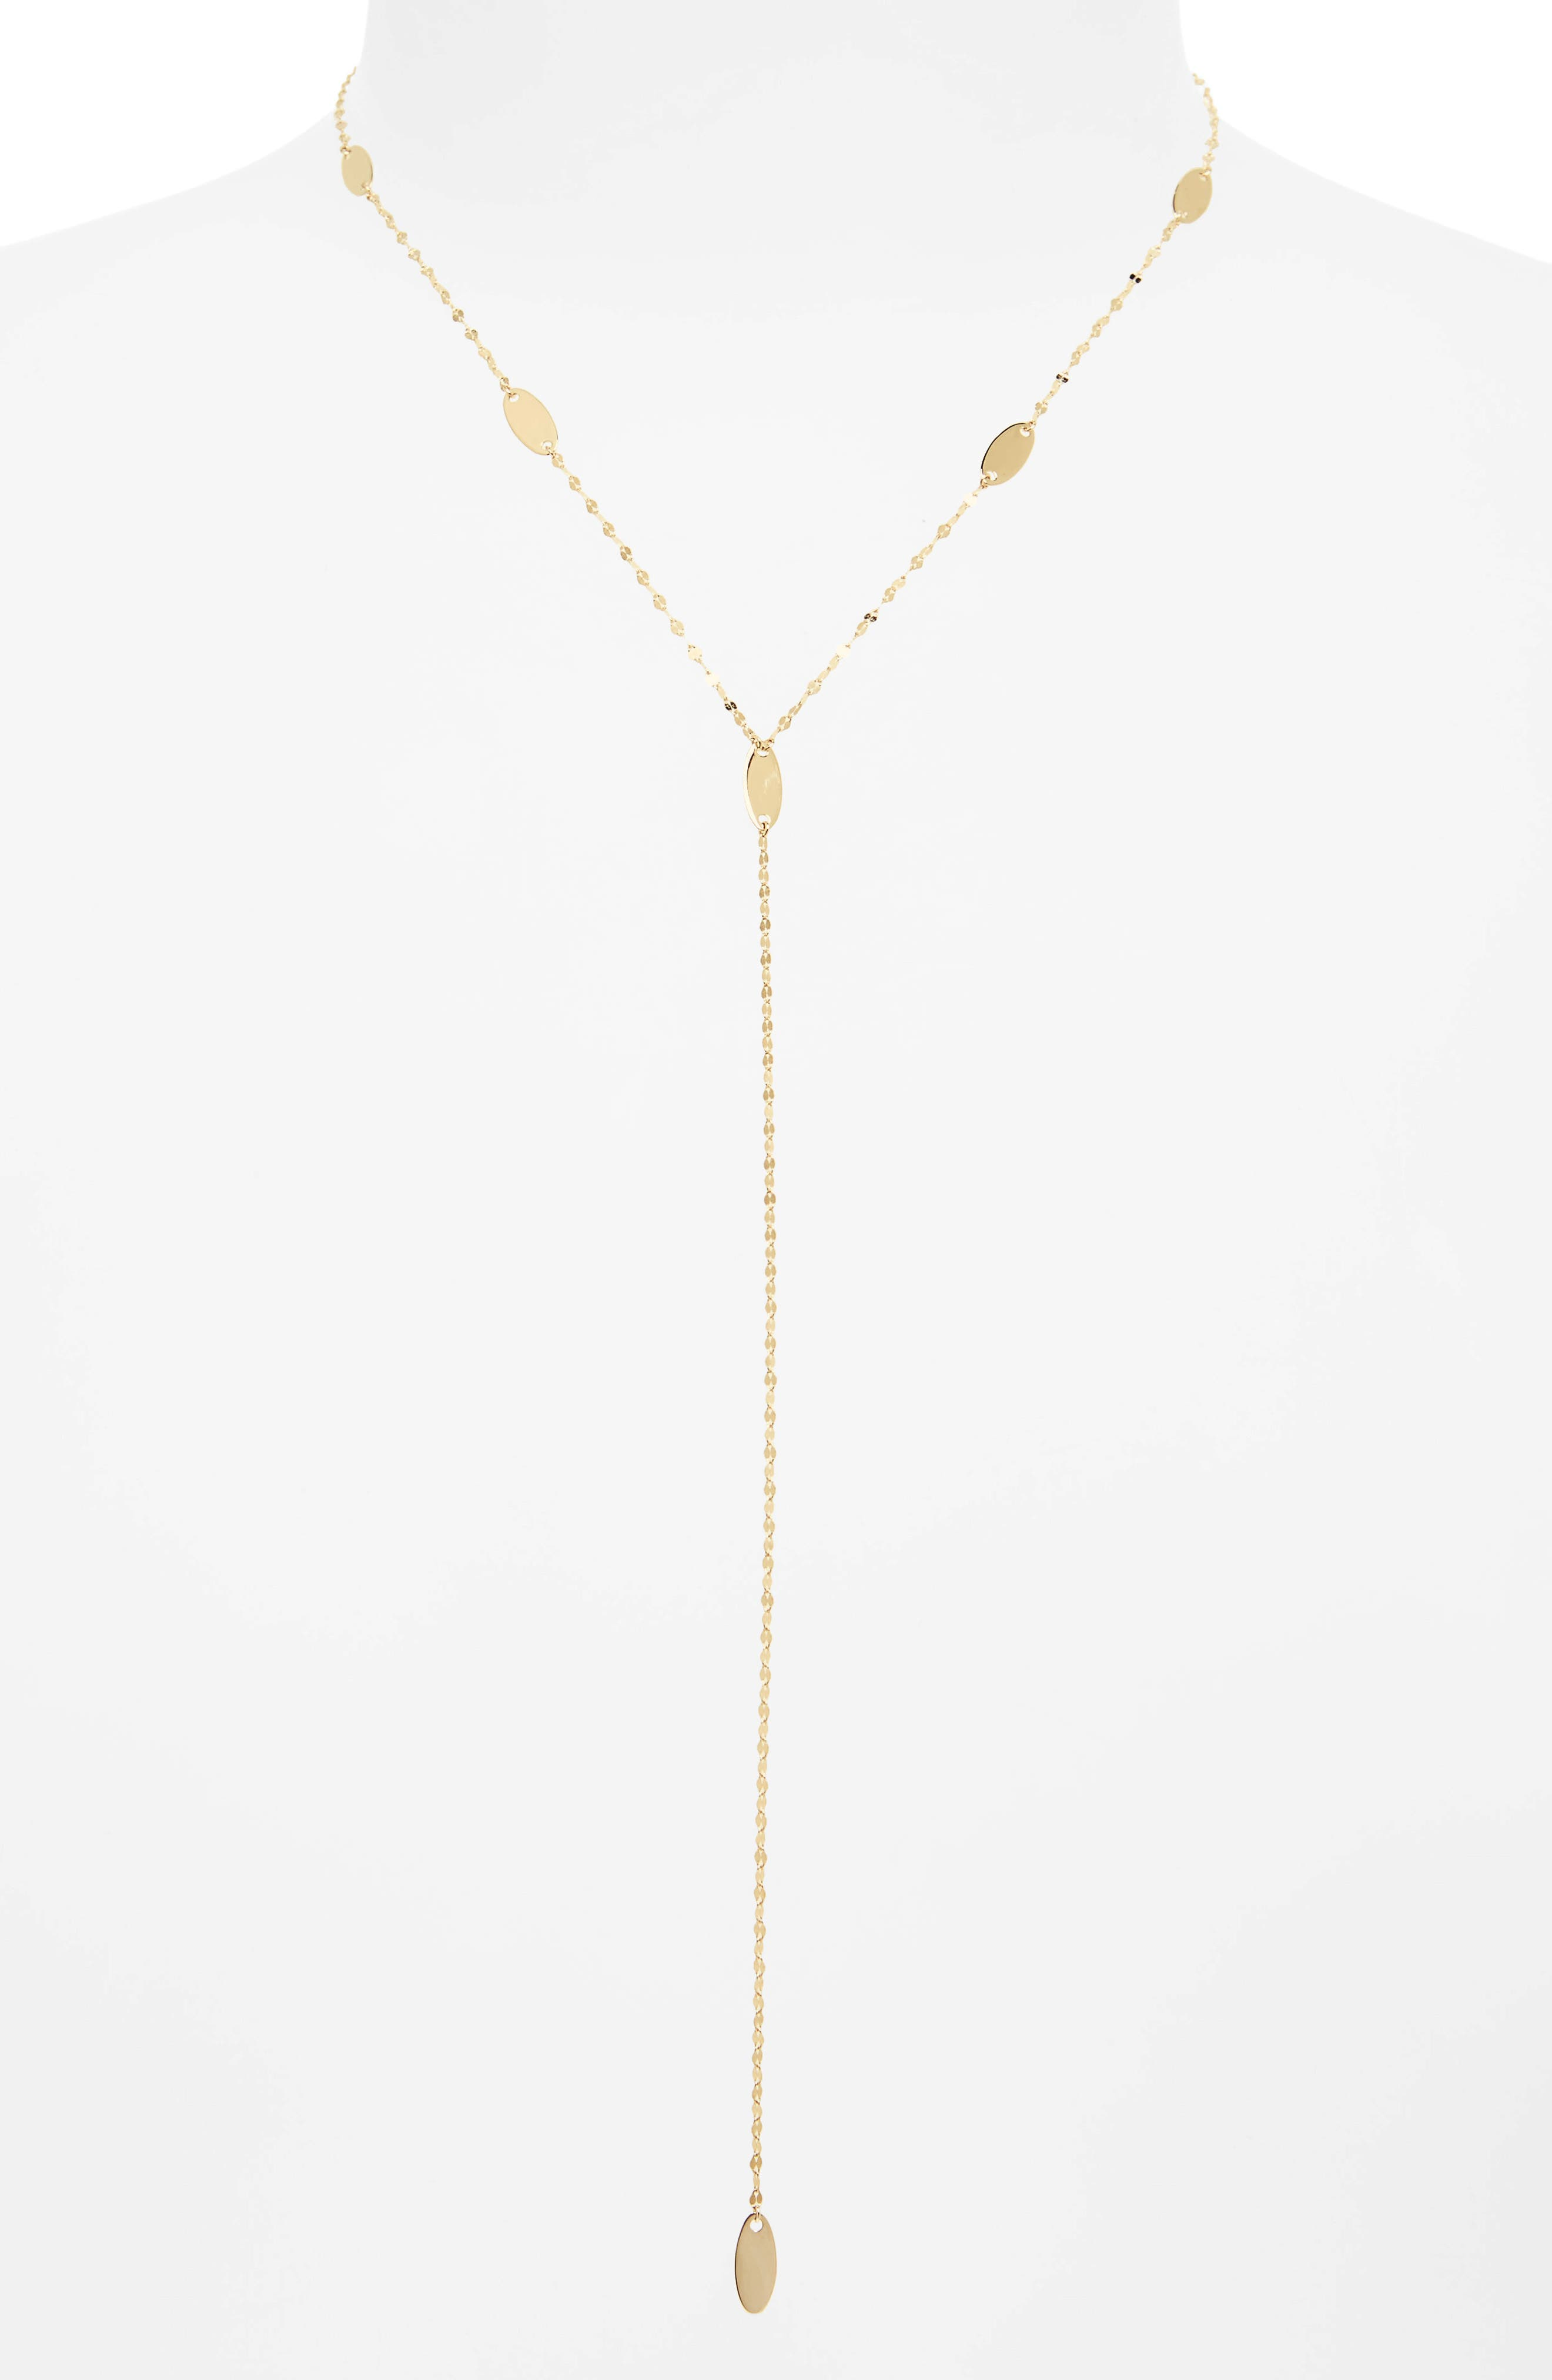 Main Image - Lana Jewelry Bond Long Ombré Marquis Lariat Necklace